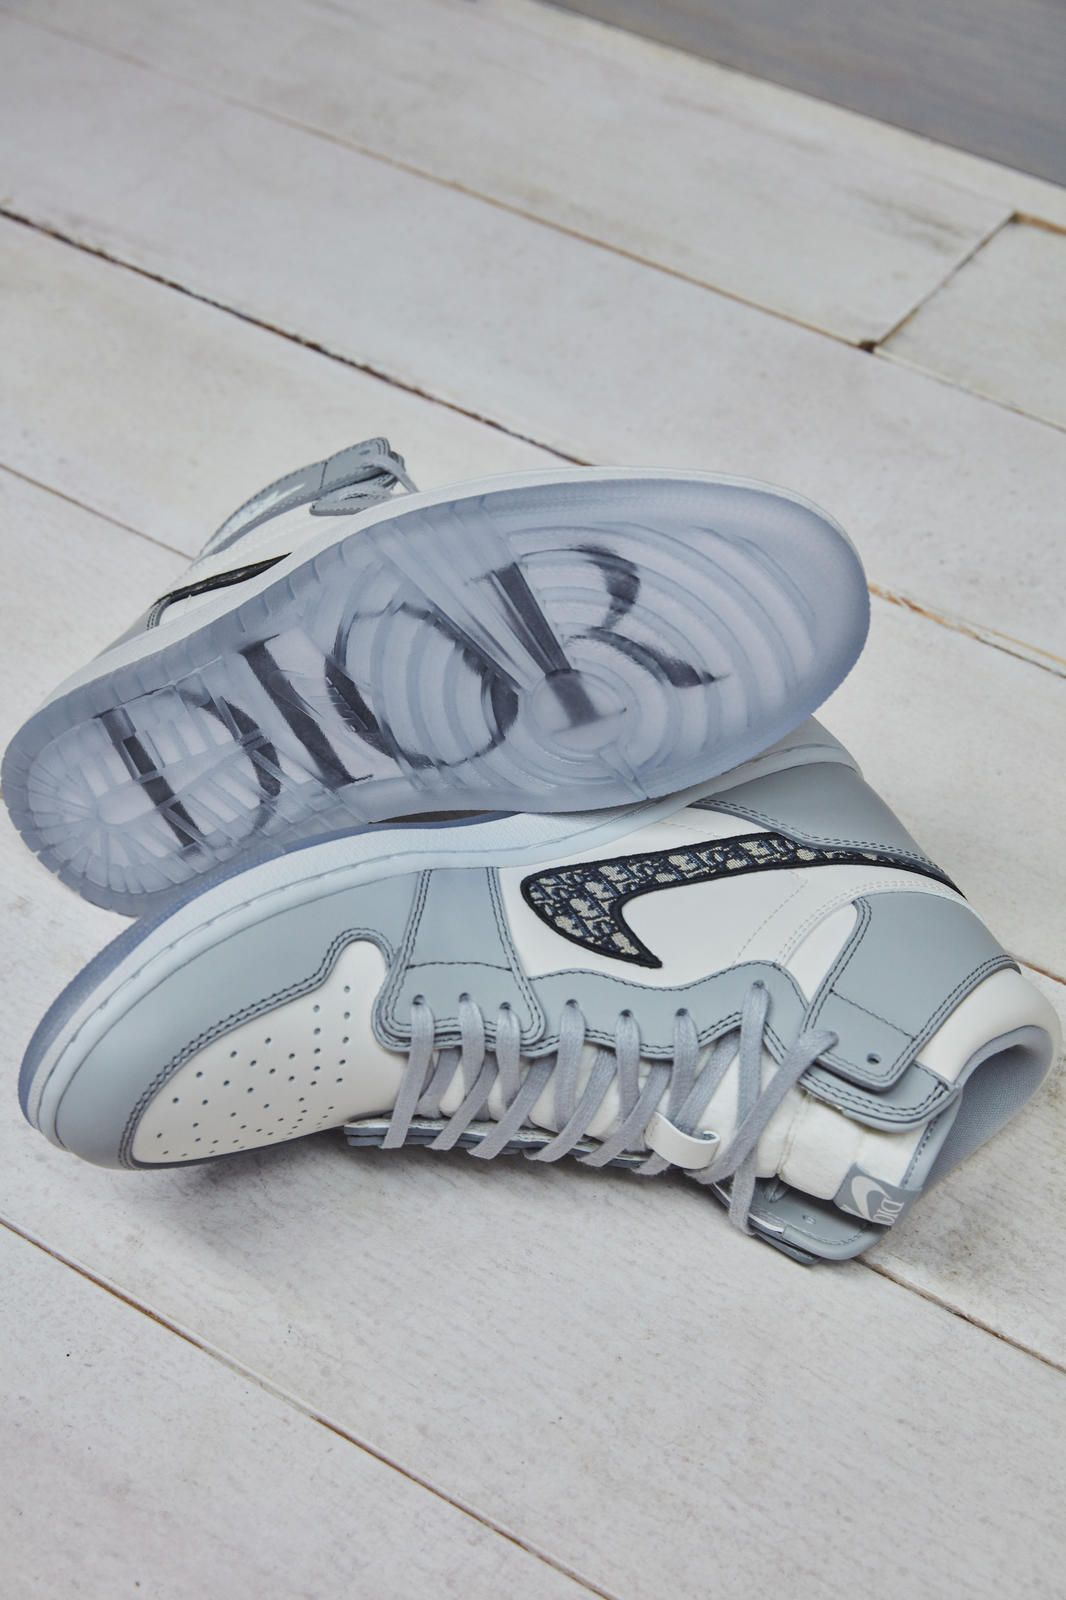 The Highly-Anticipated Air Jordans by Dior Will Drop Soon一Here's How To Own A Pair